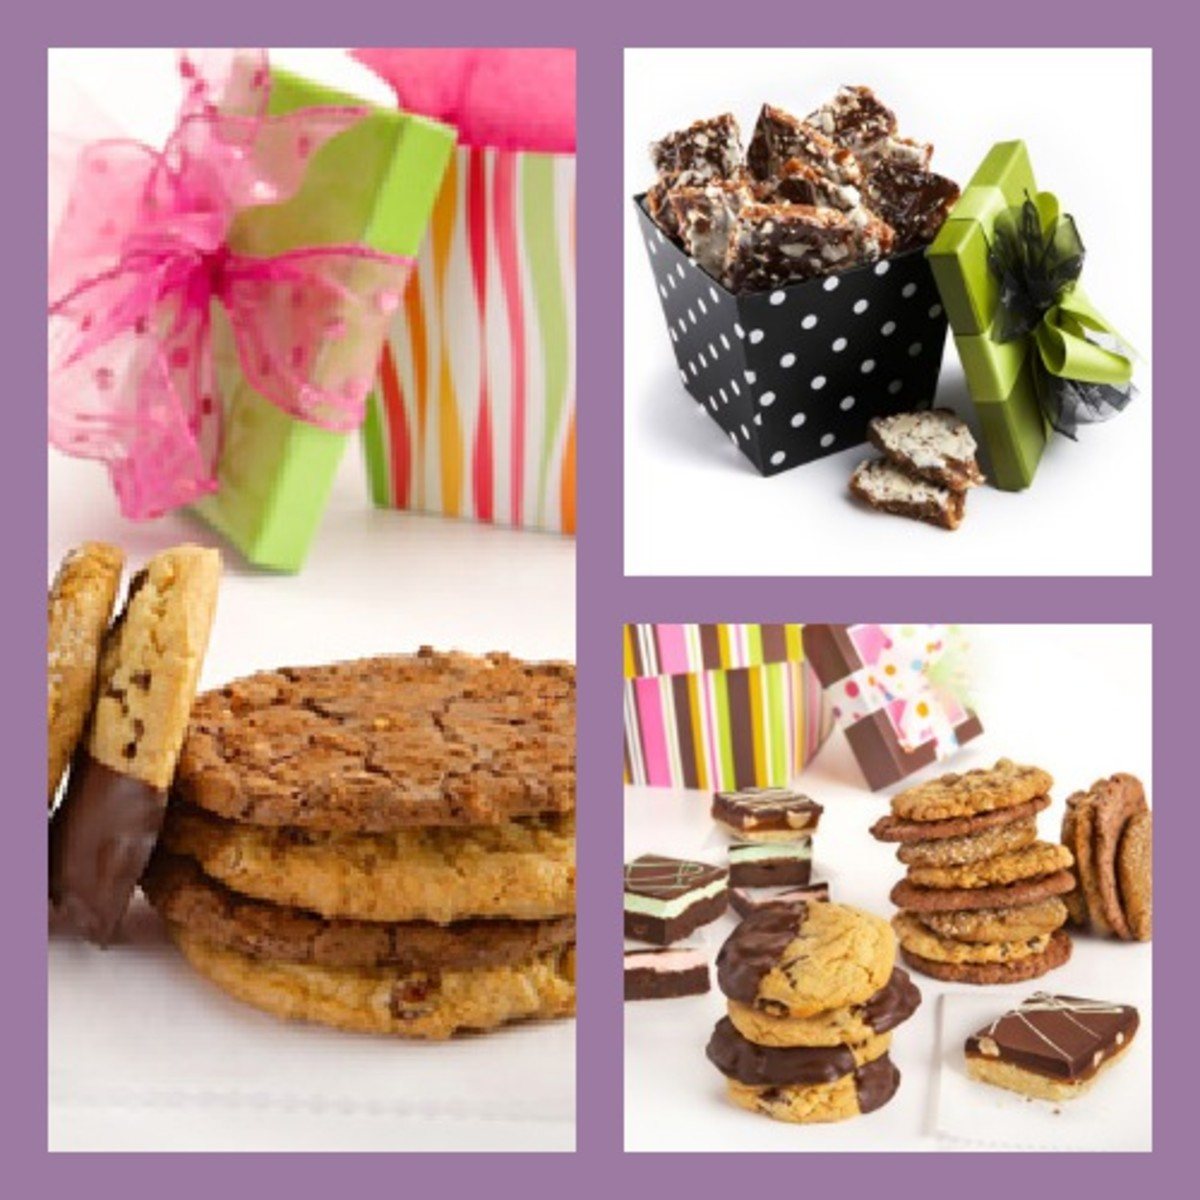 Sweets, online retailer, sweets for moms, cookies, Harvard Sweet Boutique, momtrends review